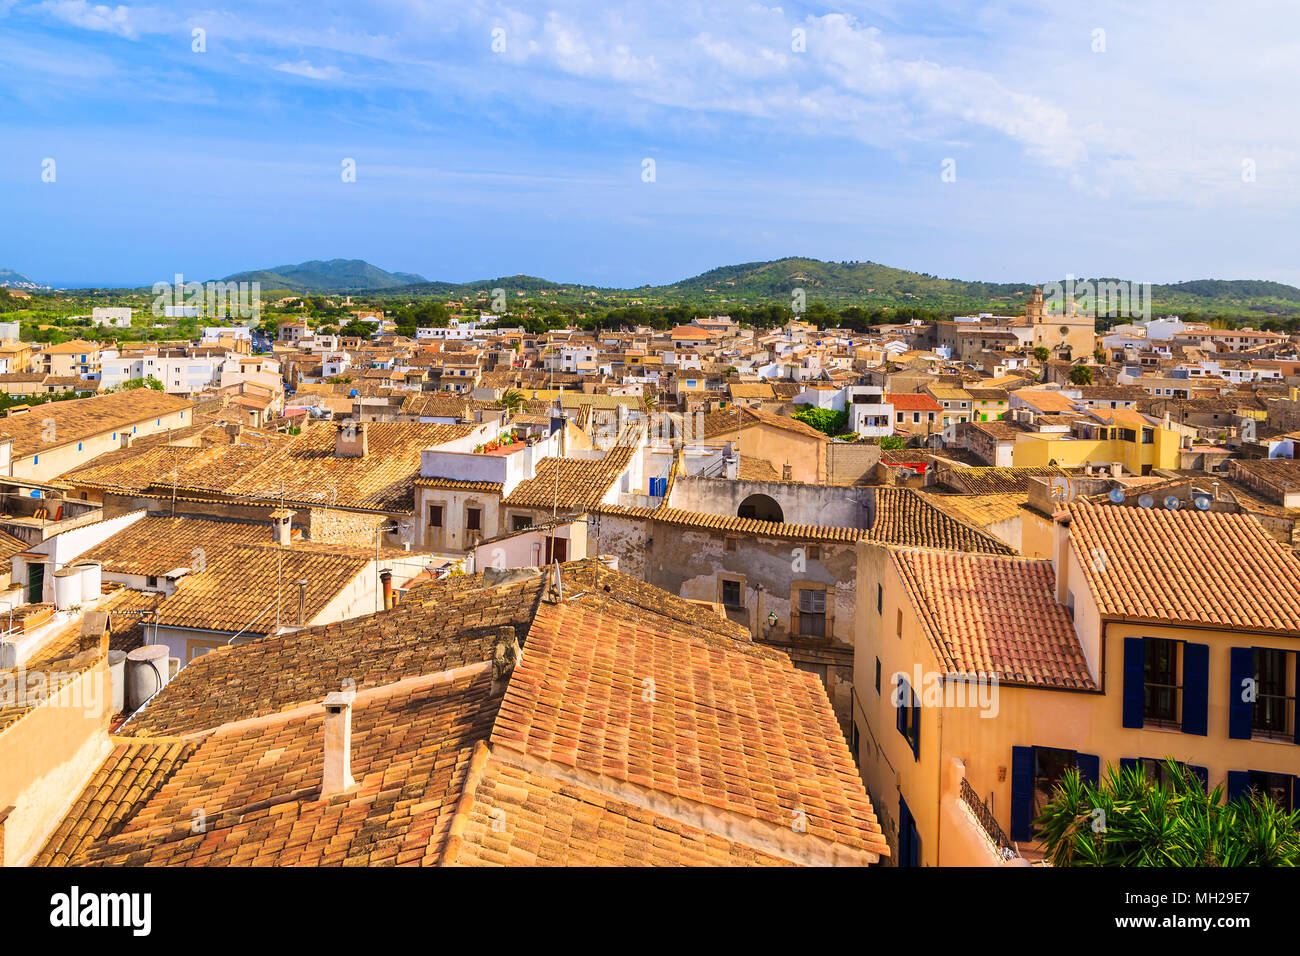 Rooftops of typical houses in Arta town, Majorca island, Spain - Stock Image